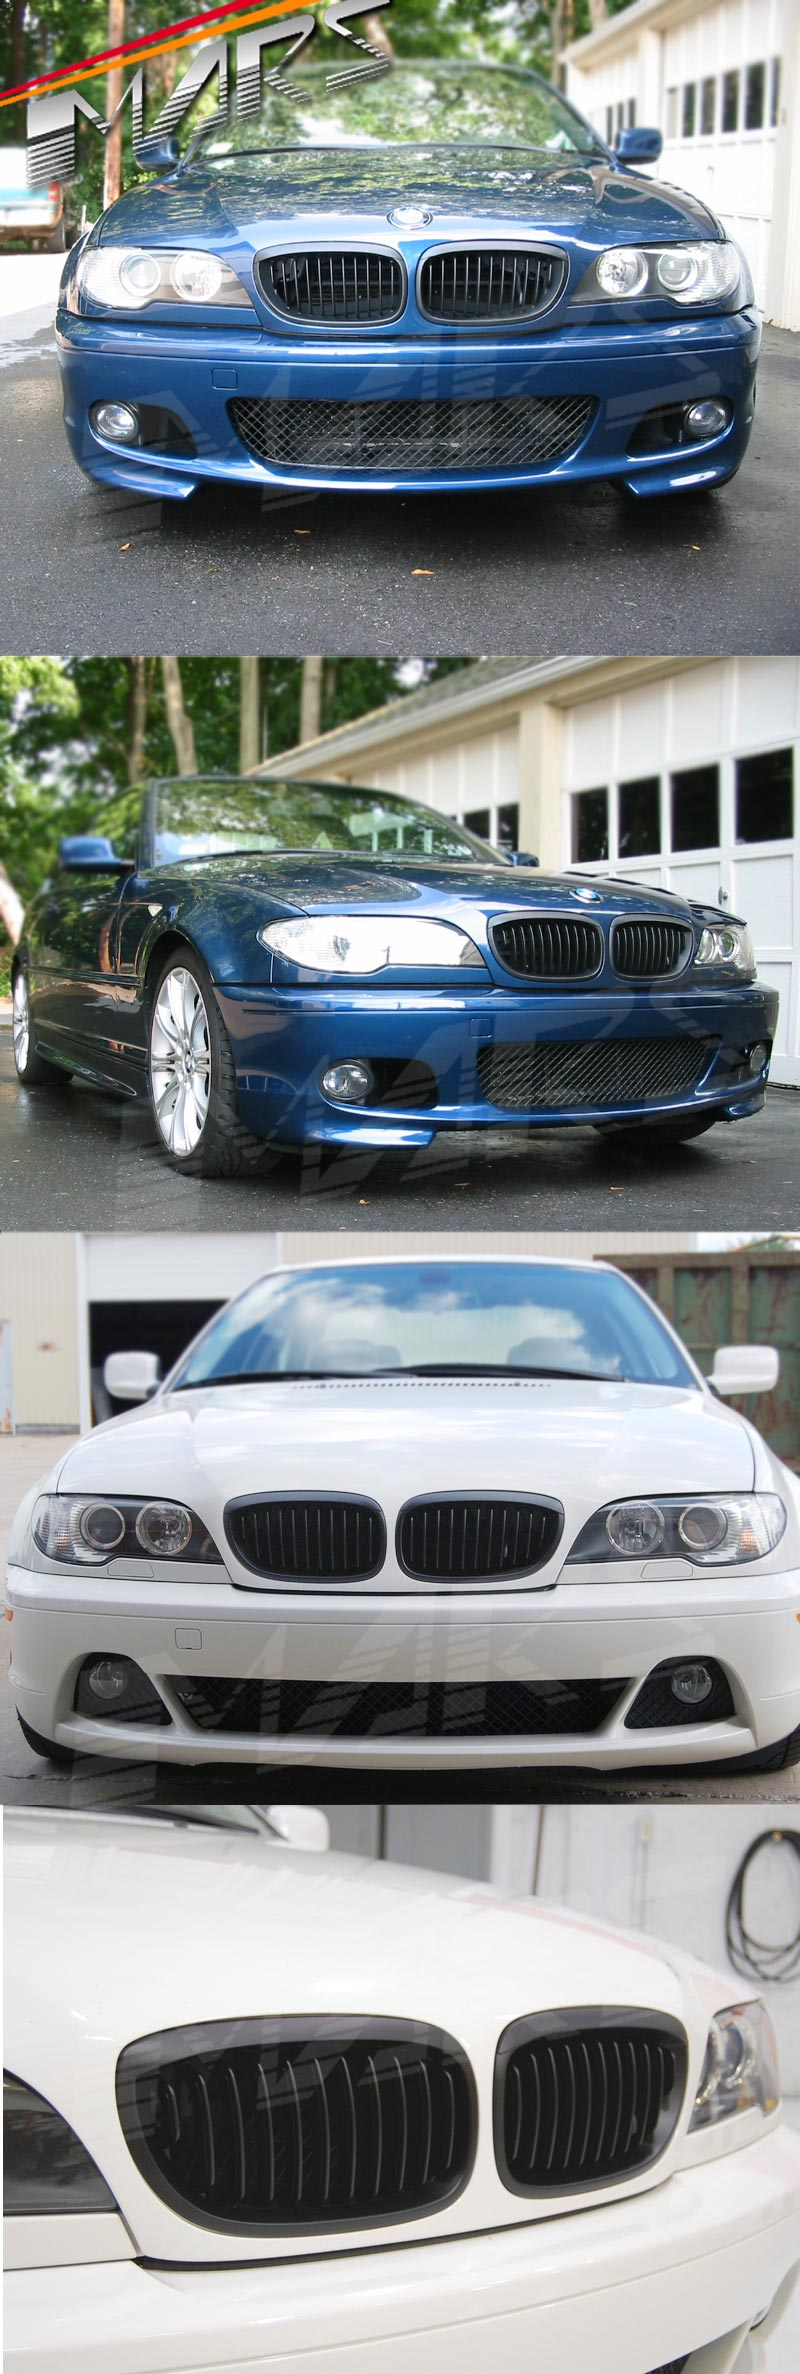 Xxiaohh 2pcs Car Gloss Black Car Front Kidney Racing Grille Grill For Bmw E46 Lci 325i 4d Facelift 2002 2003 2004 2005 Car Styling Body Fittings Car Parts